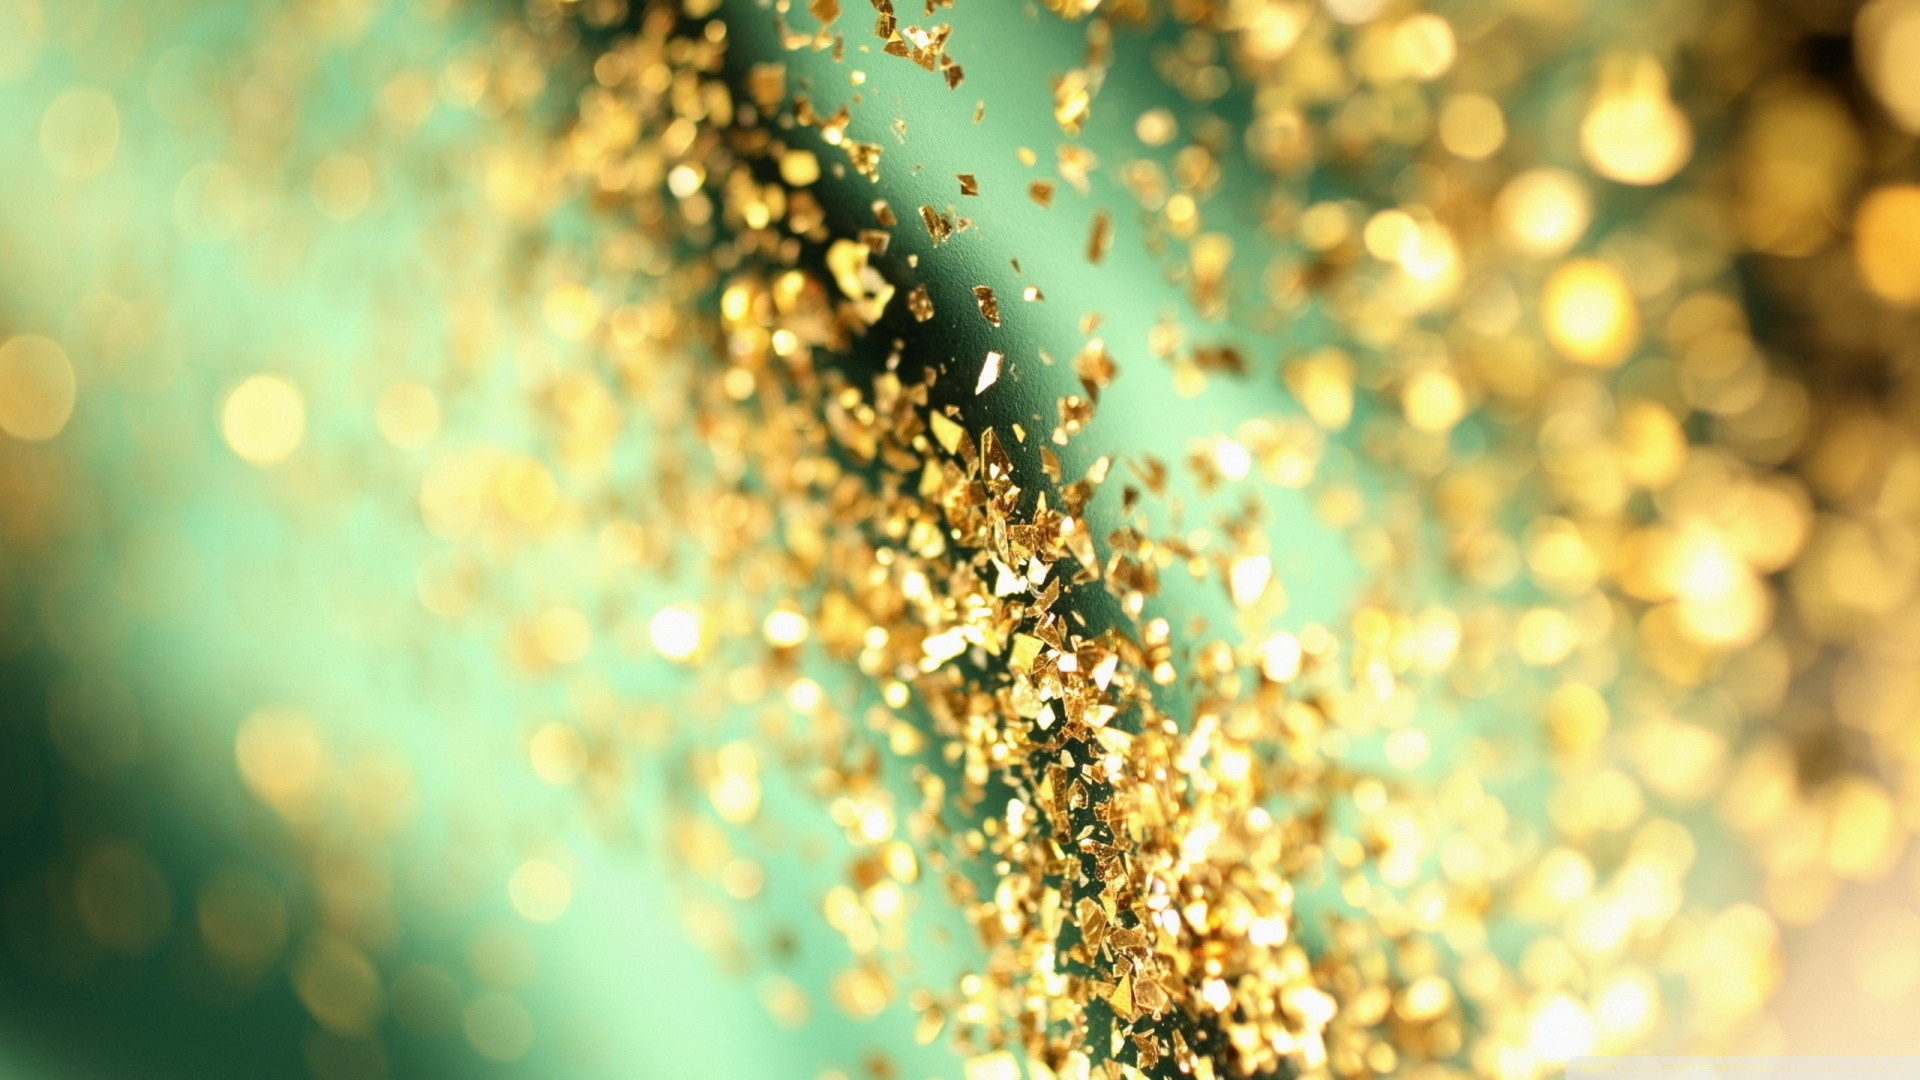 Iphone 6 Hd Car Wallpapers 1080p Gold Sparkle Background 183 ① Download Free Awesome Full Hd